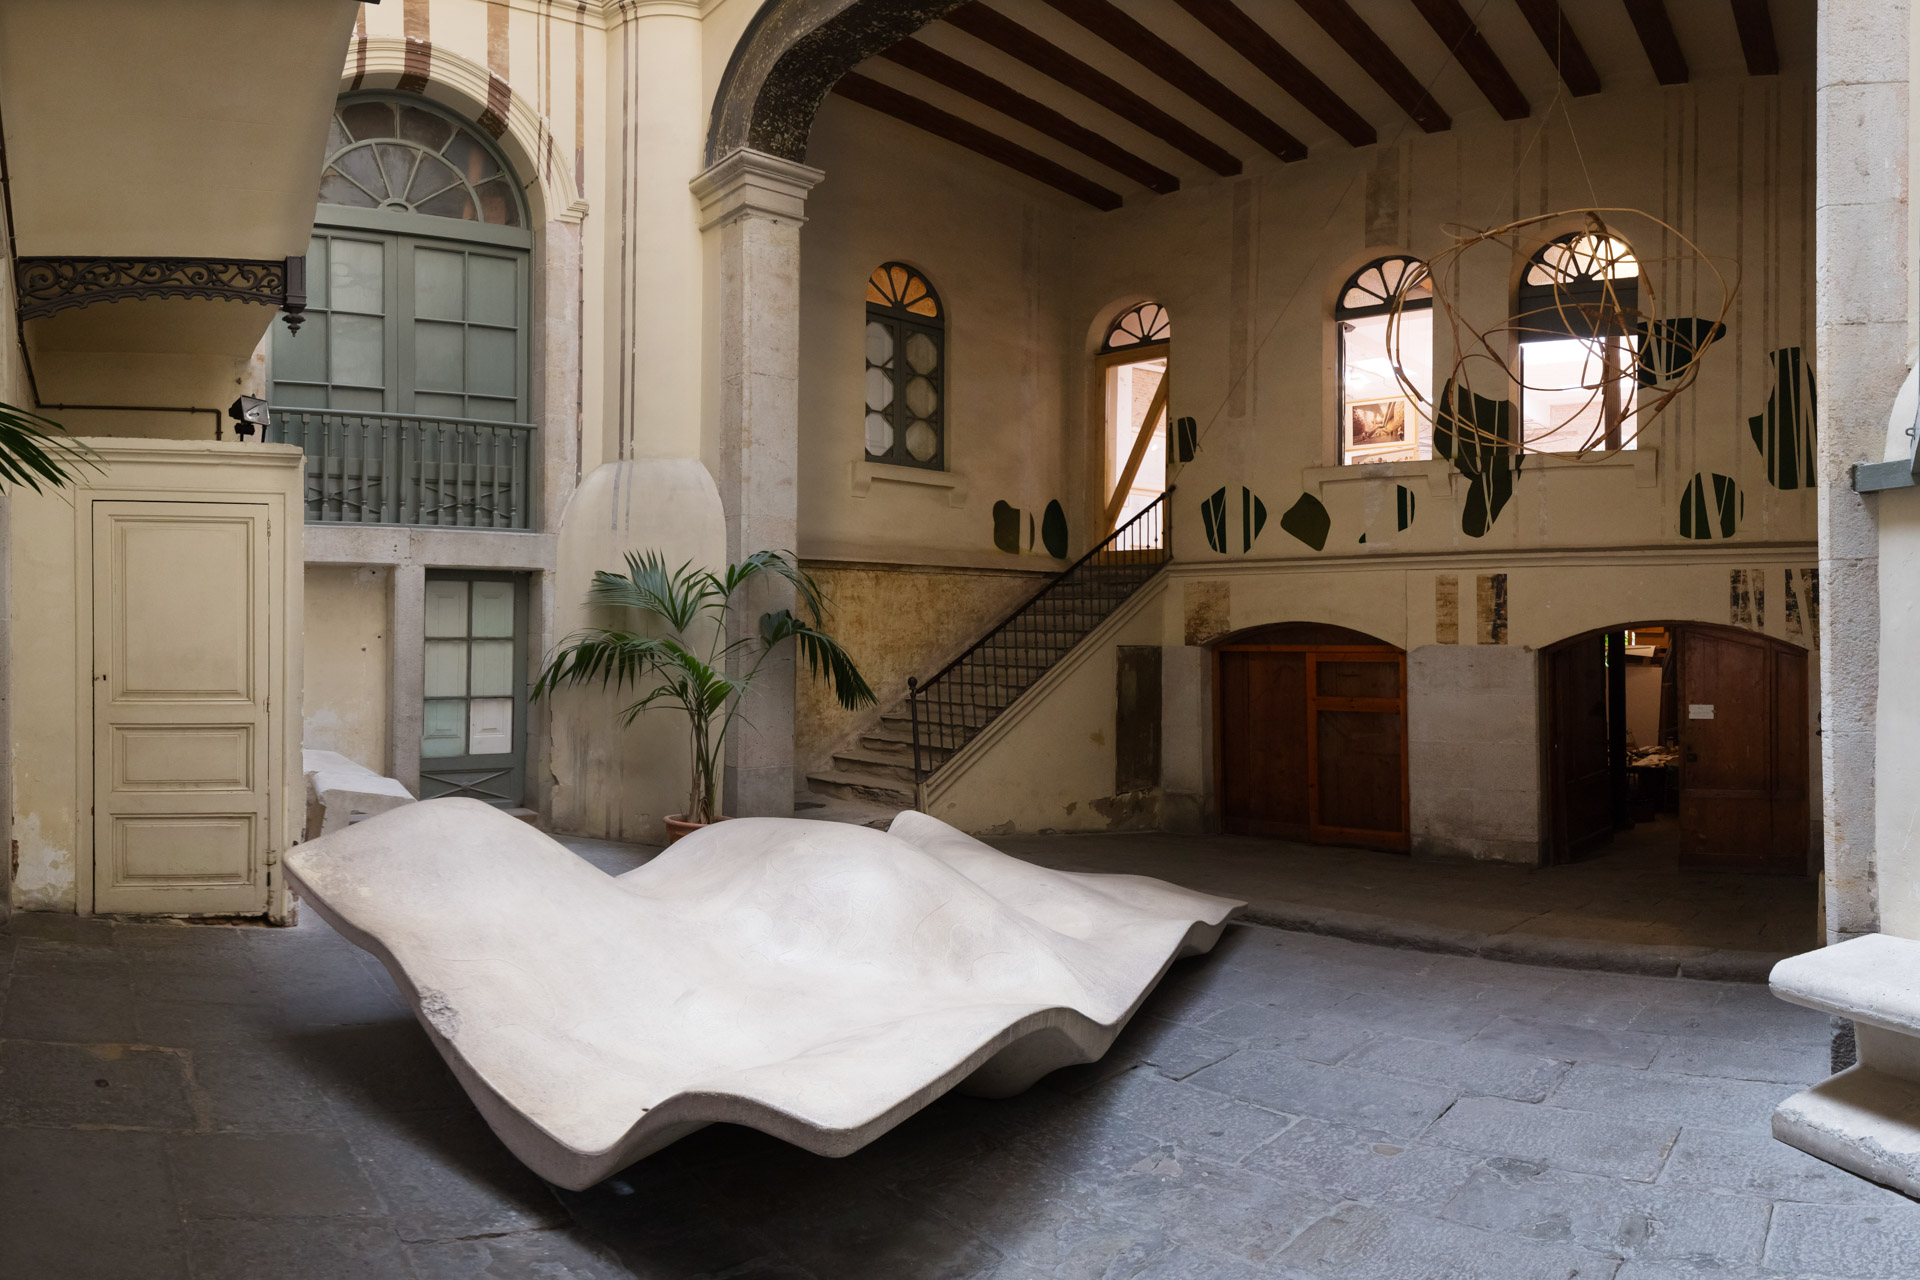 The Foundation Enric Miralles